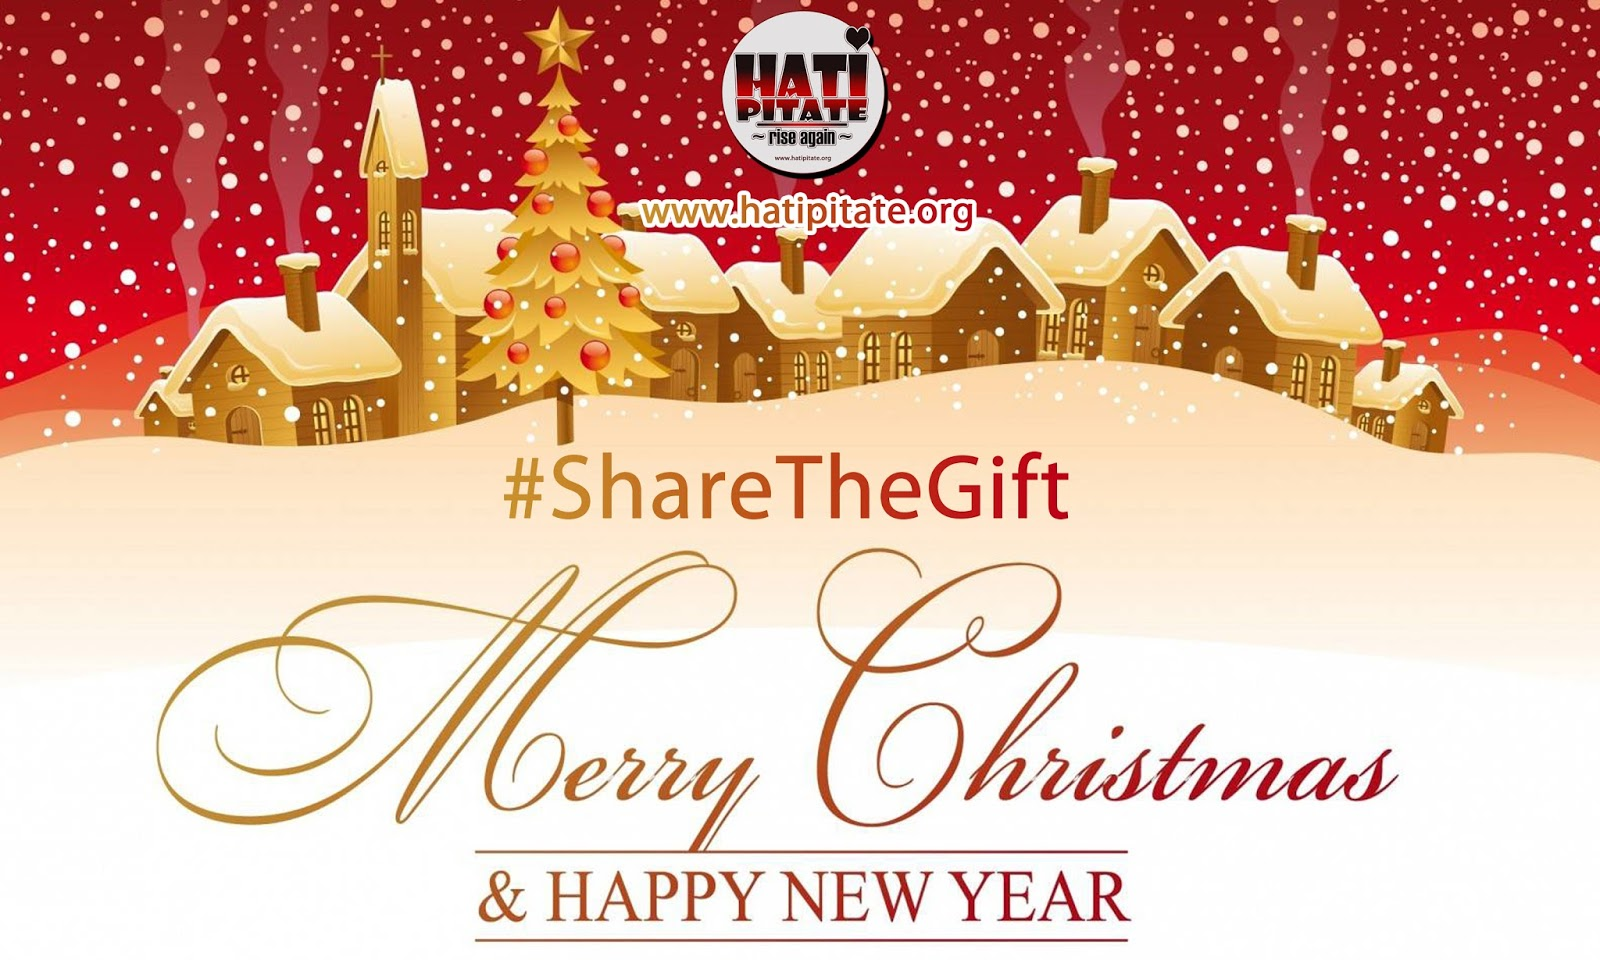 Share The Gift - Christmas Campaign